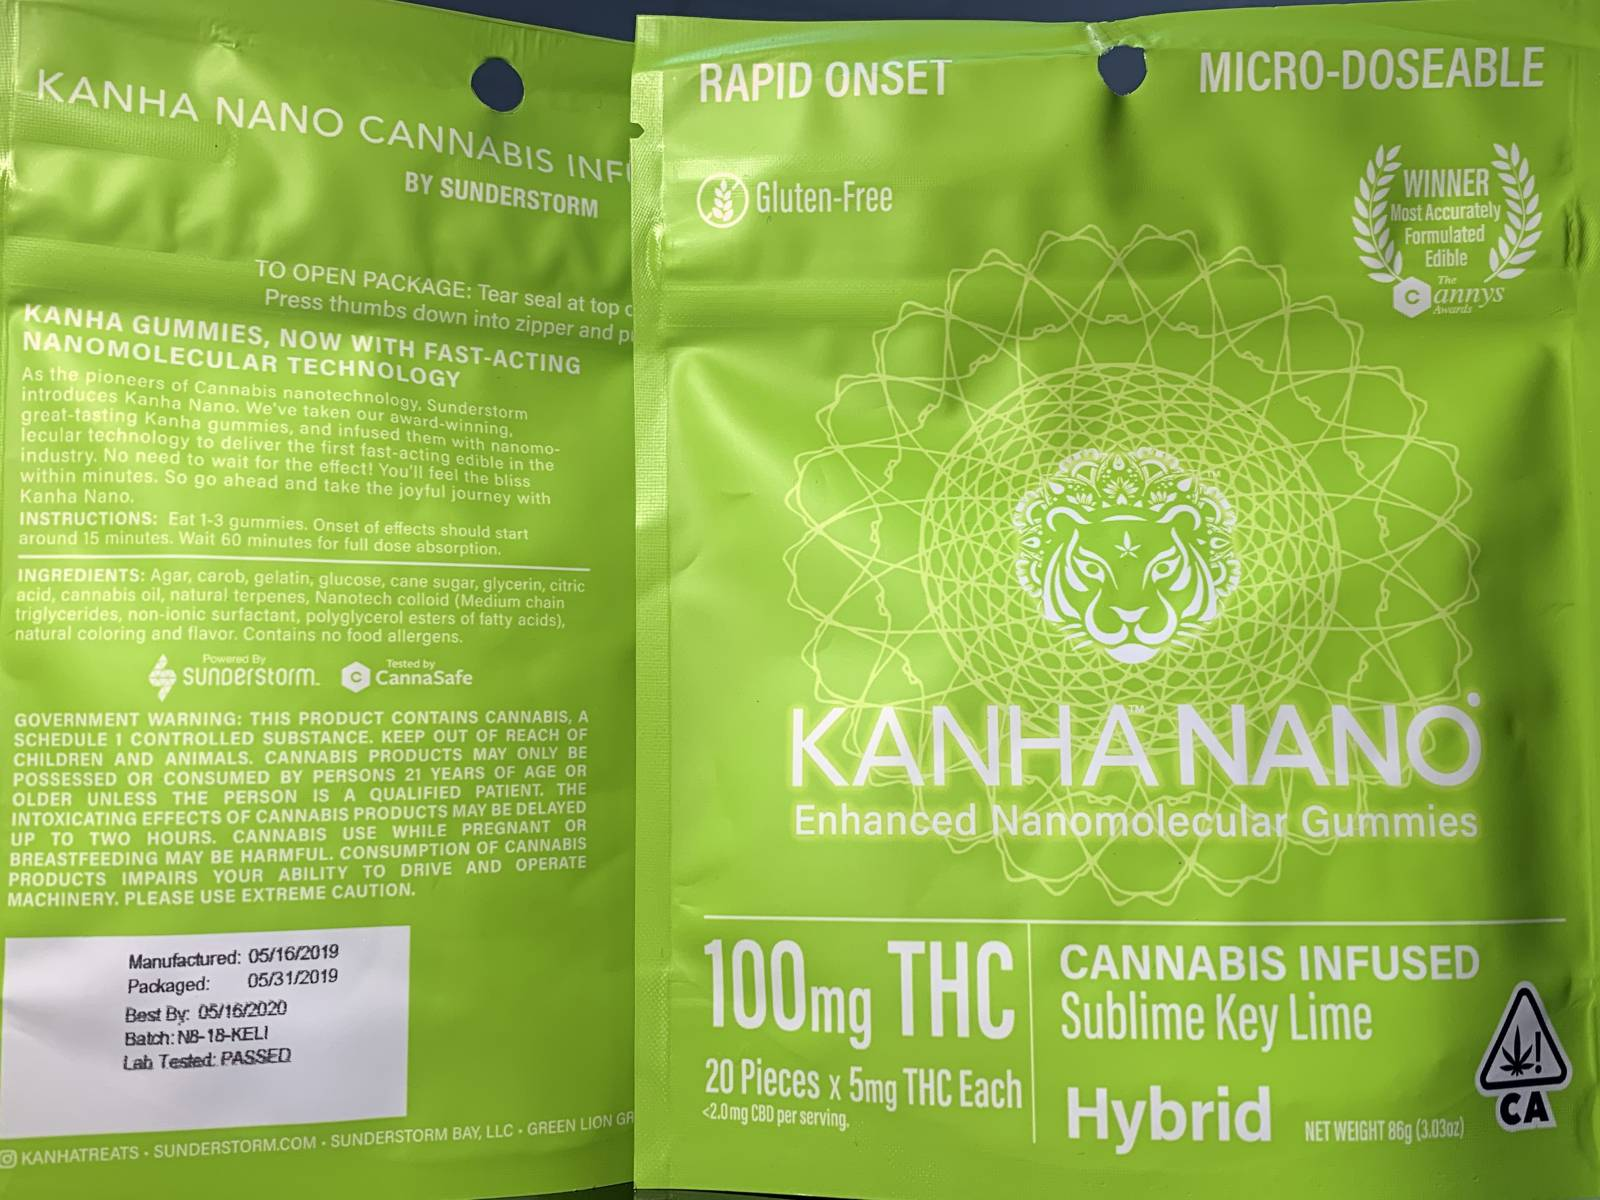 Kanha Nano sublime key lime hybrid gummies